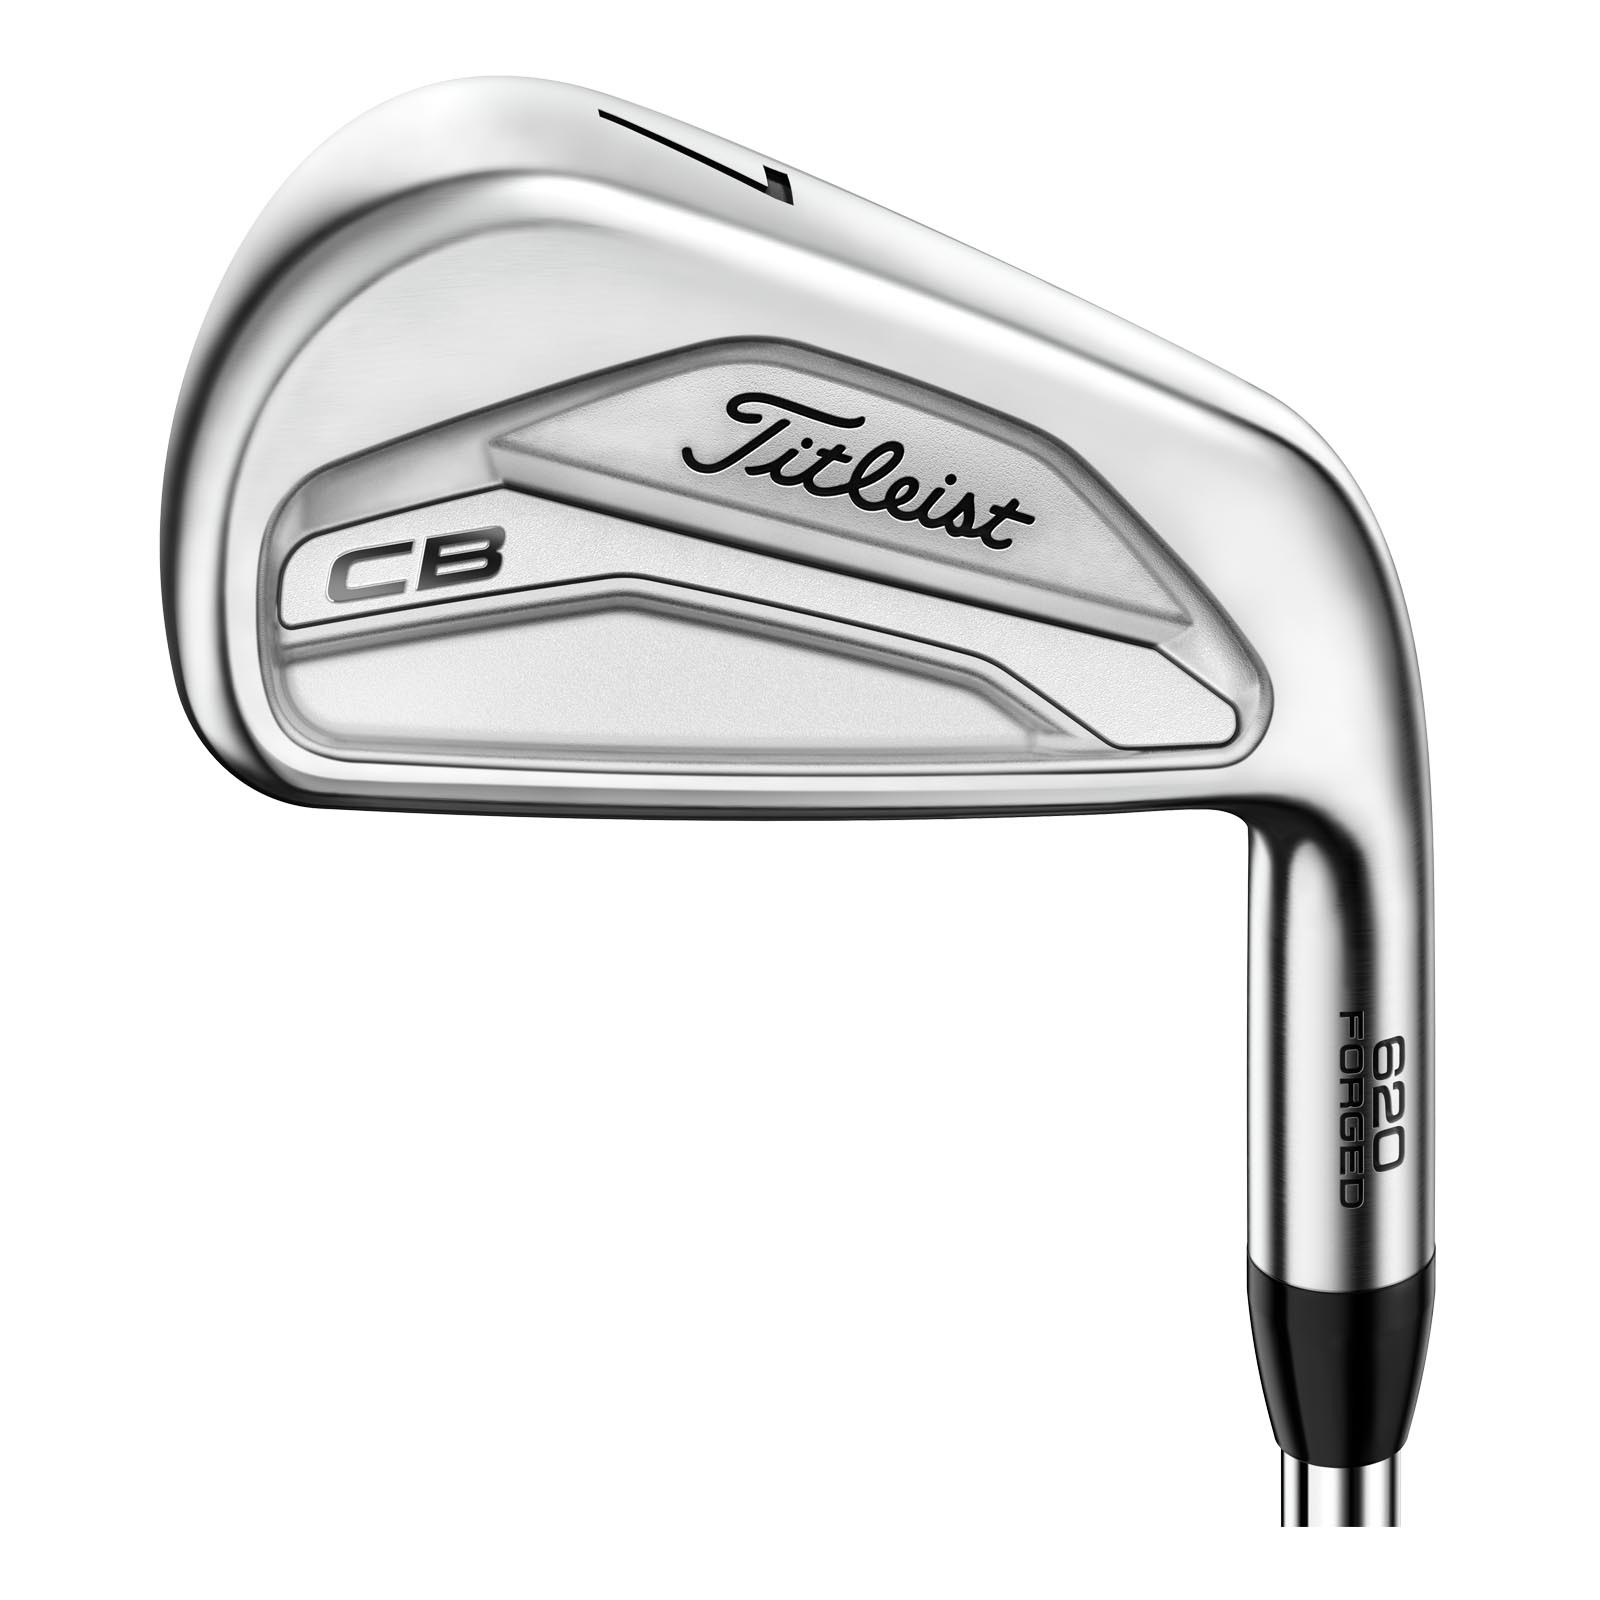 Titleist 620 CB Golf Irons - With full custom options